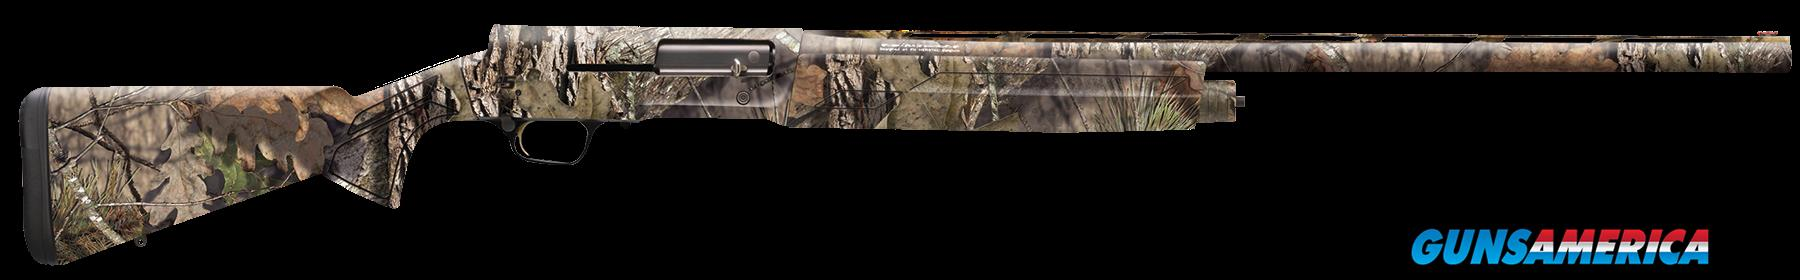 "Browning 0118332003 A5 Semi-Automatic 12 Gauge 30"" 3.5"" Mossy Oak Break-Up Country Synthetic Stk  Guns > Shotguns > B Misc Shotguns"